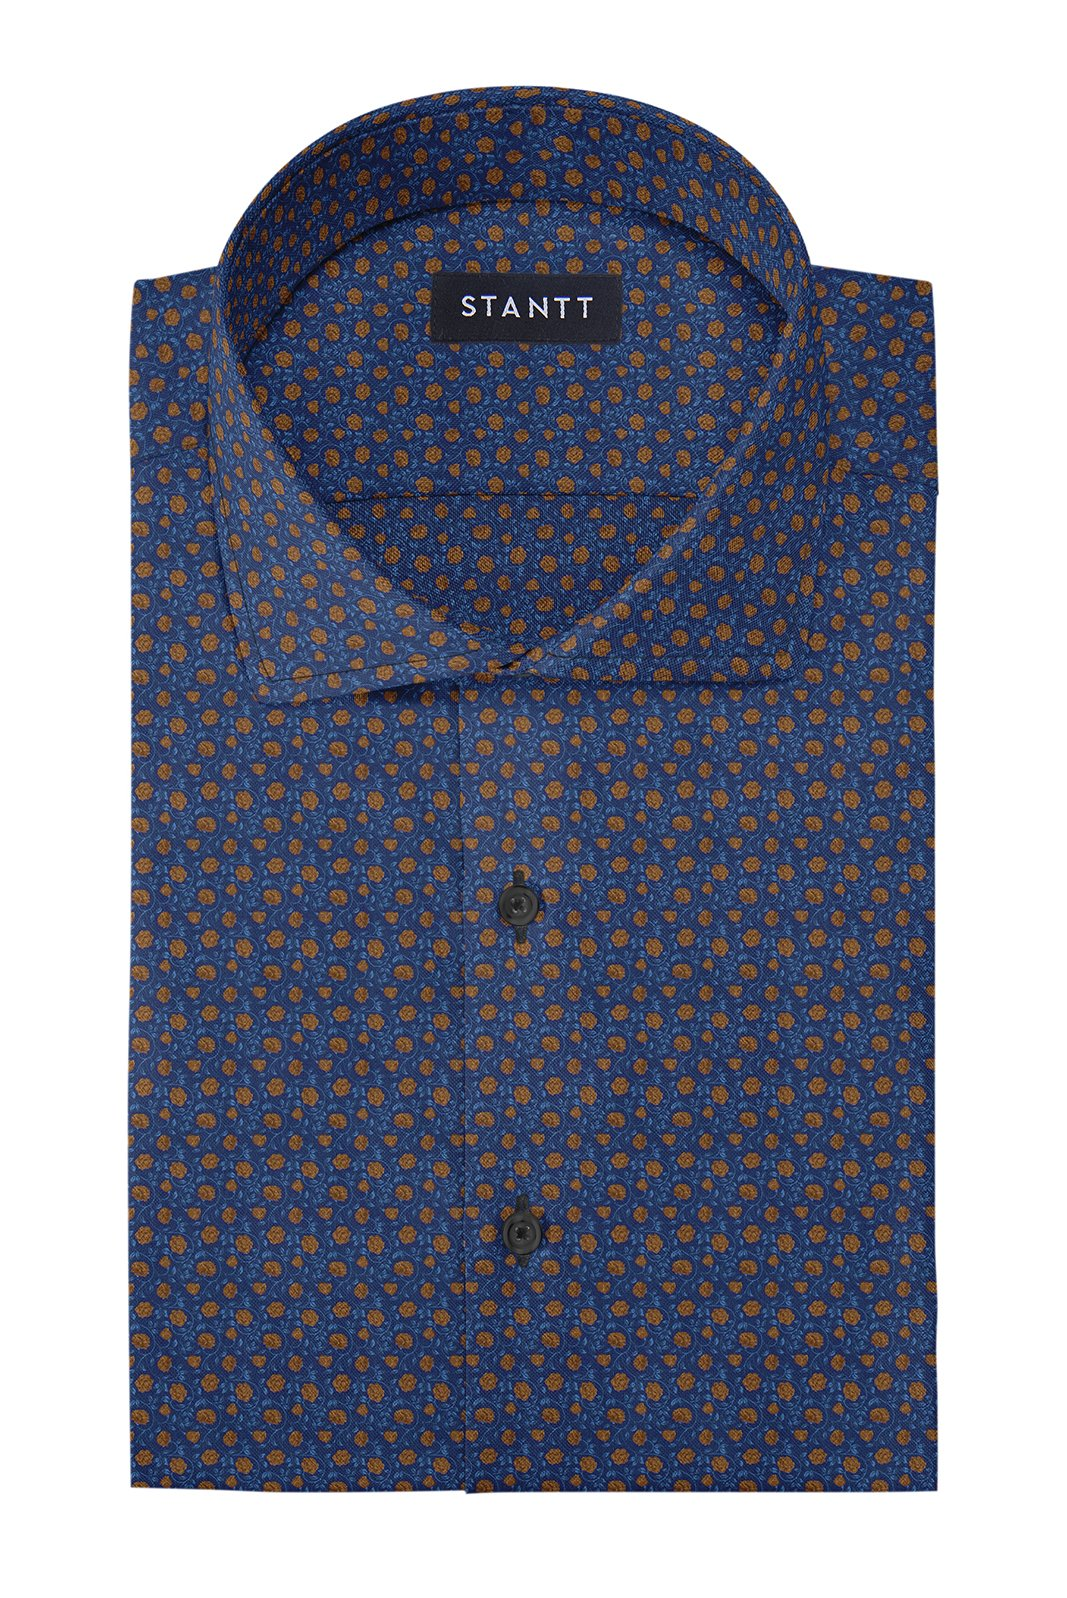 Golden Rose Print on Navy: Cutaway Collar, Barrel Cuff